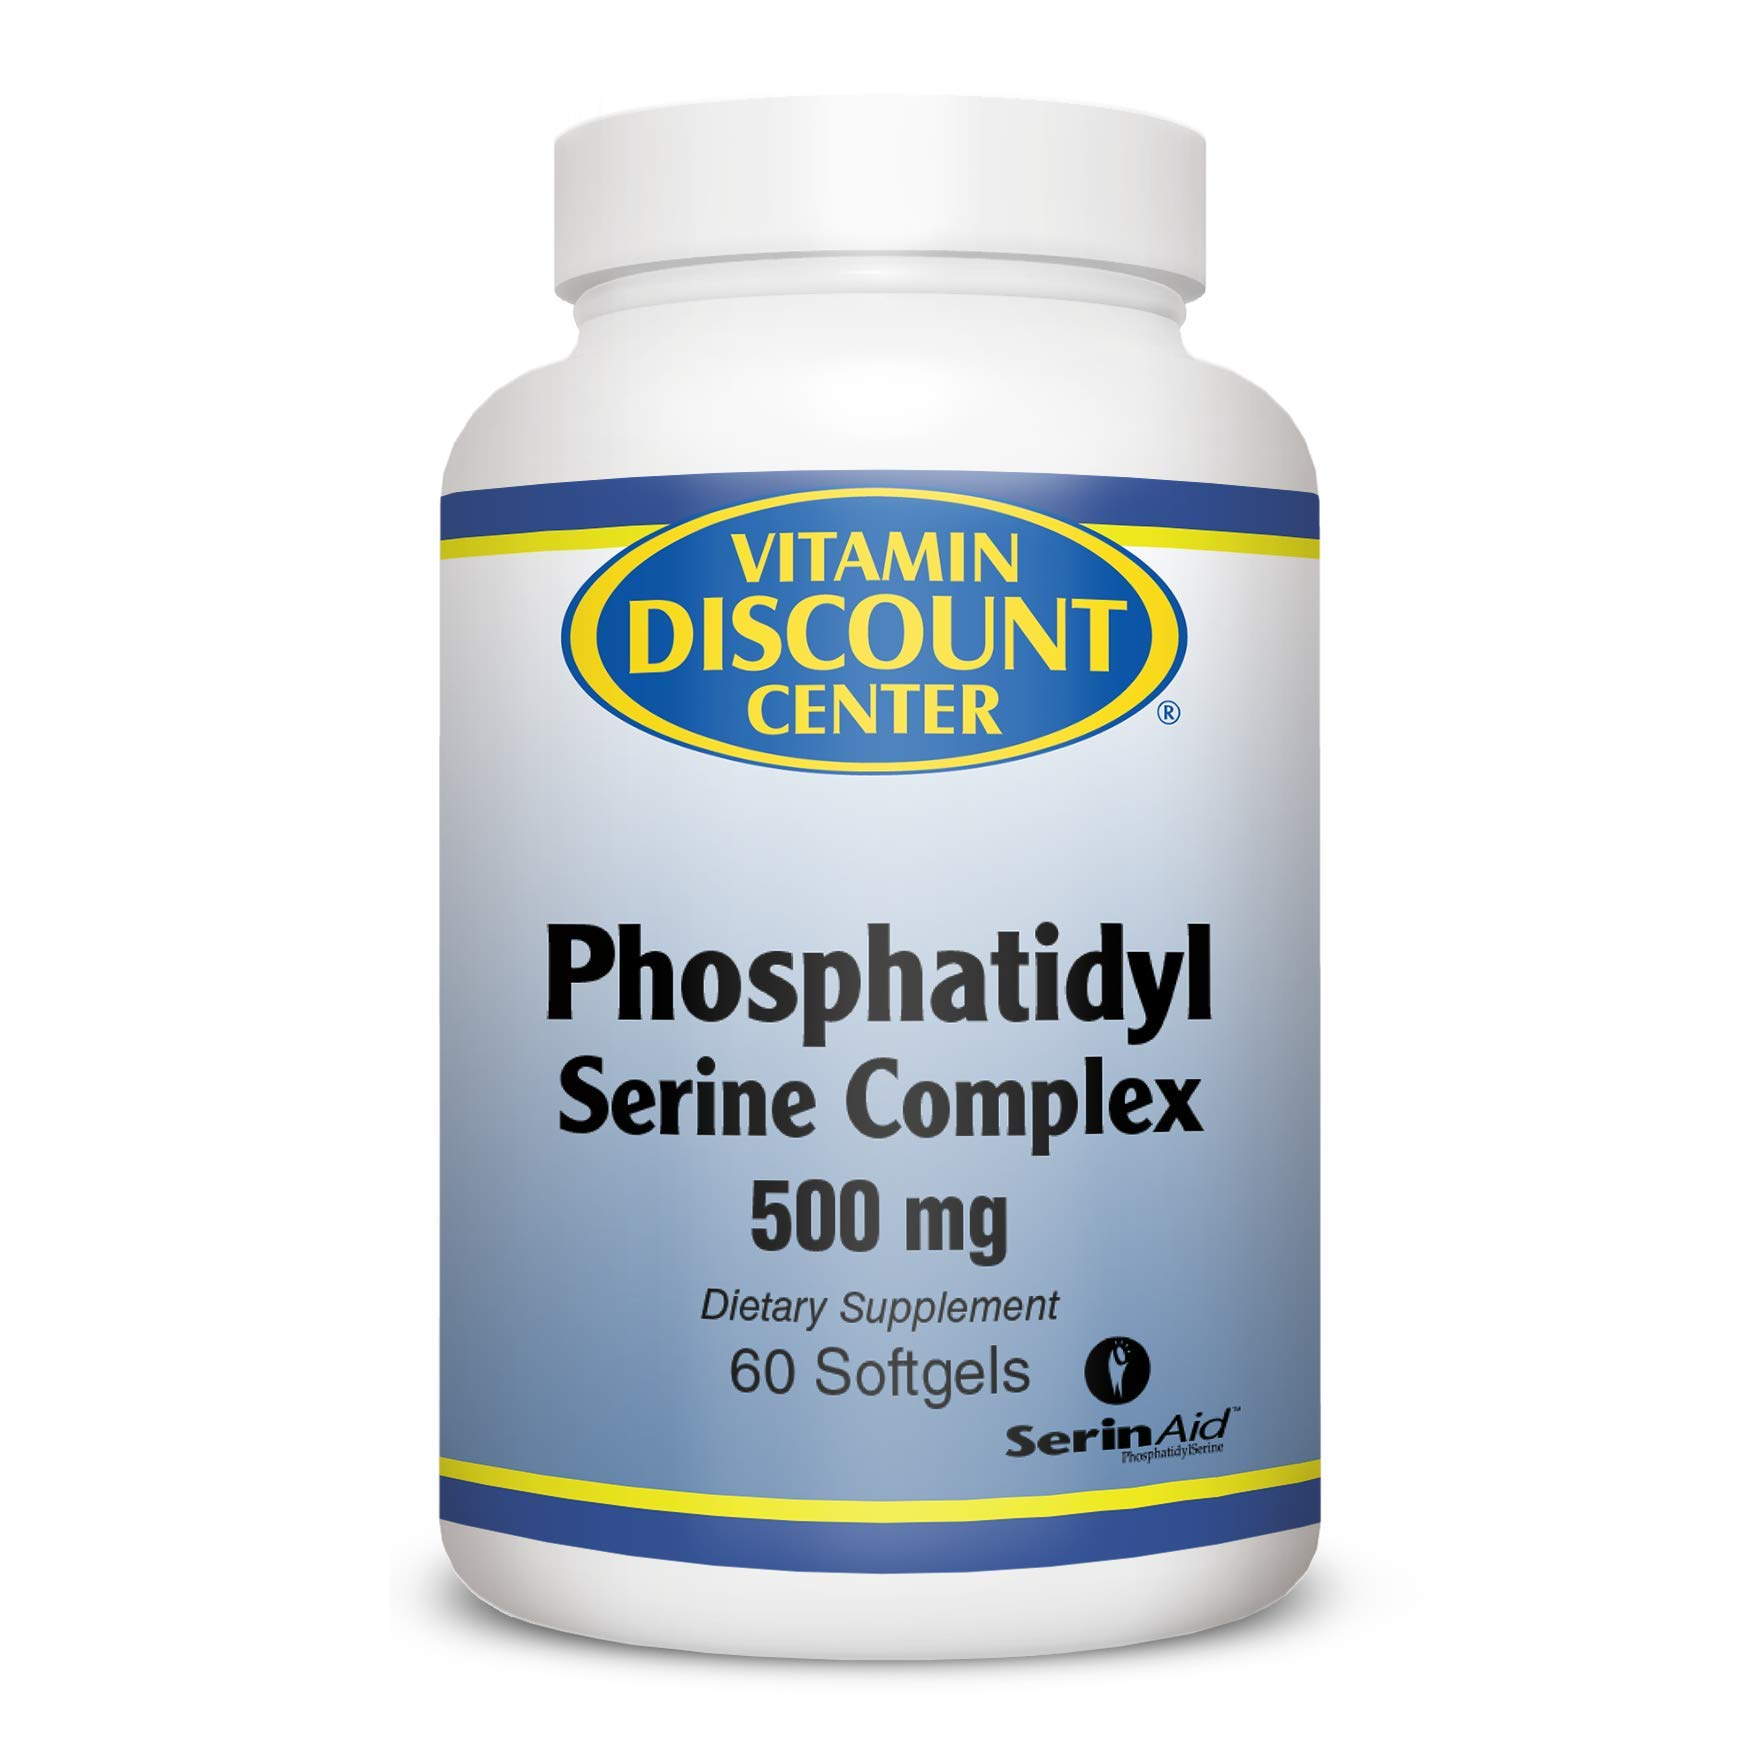 Vitamin Discount Center, Phosphatidyl Serine Complex 500 mg, 60 Softgels (2 Pack) by Vitamin Discount Center